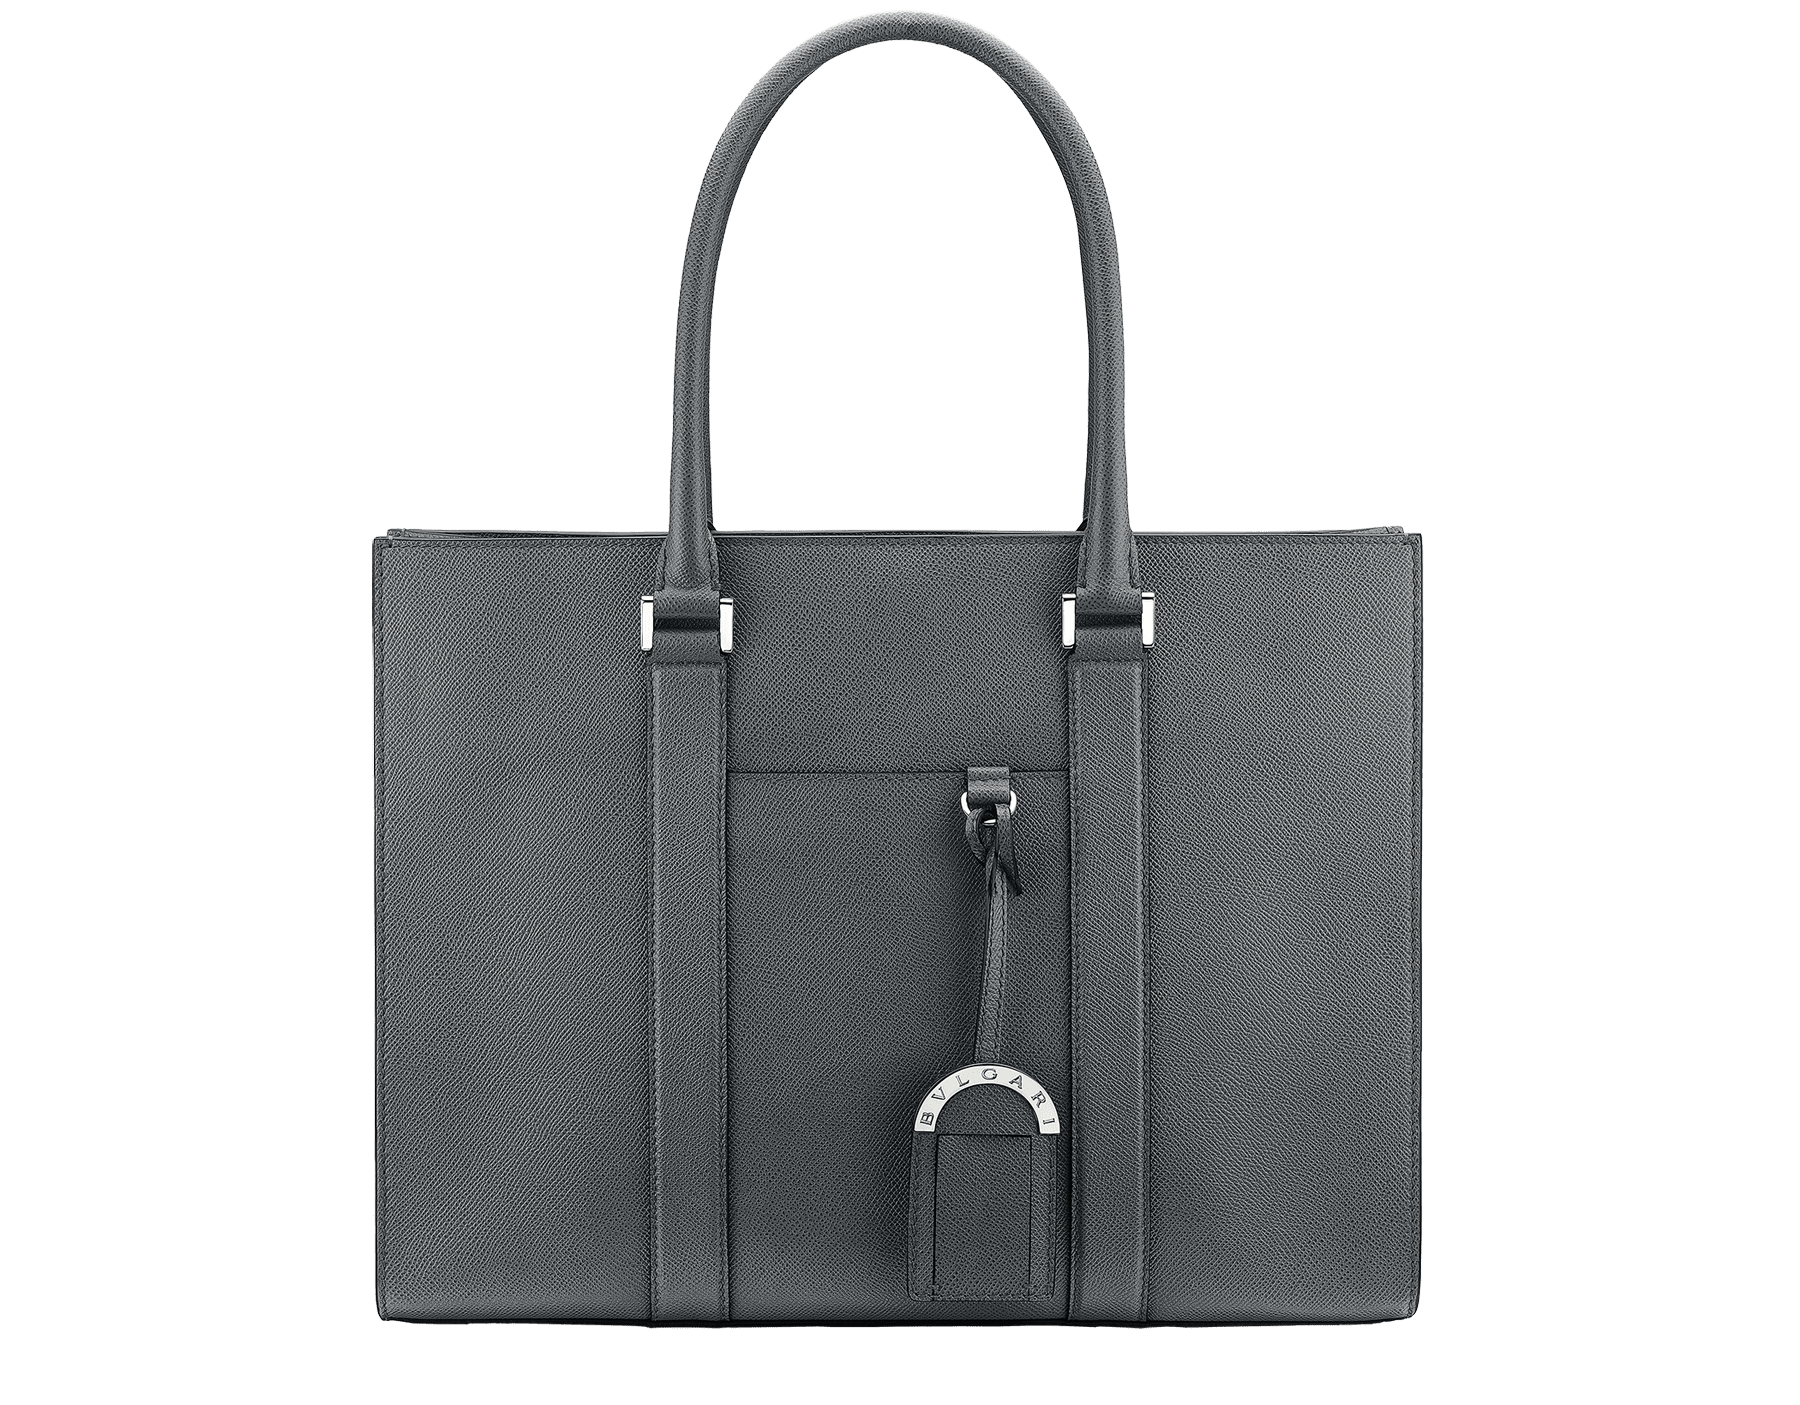 "Borsa Tote ""BVLGARI BVLGARI"" in vitello martellato color giada mimetic con finiture in ottone placcato palladio. BBM-001-0623M image 1"